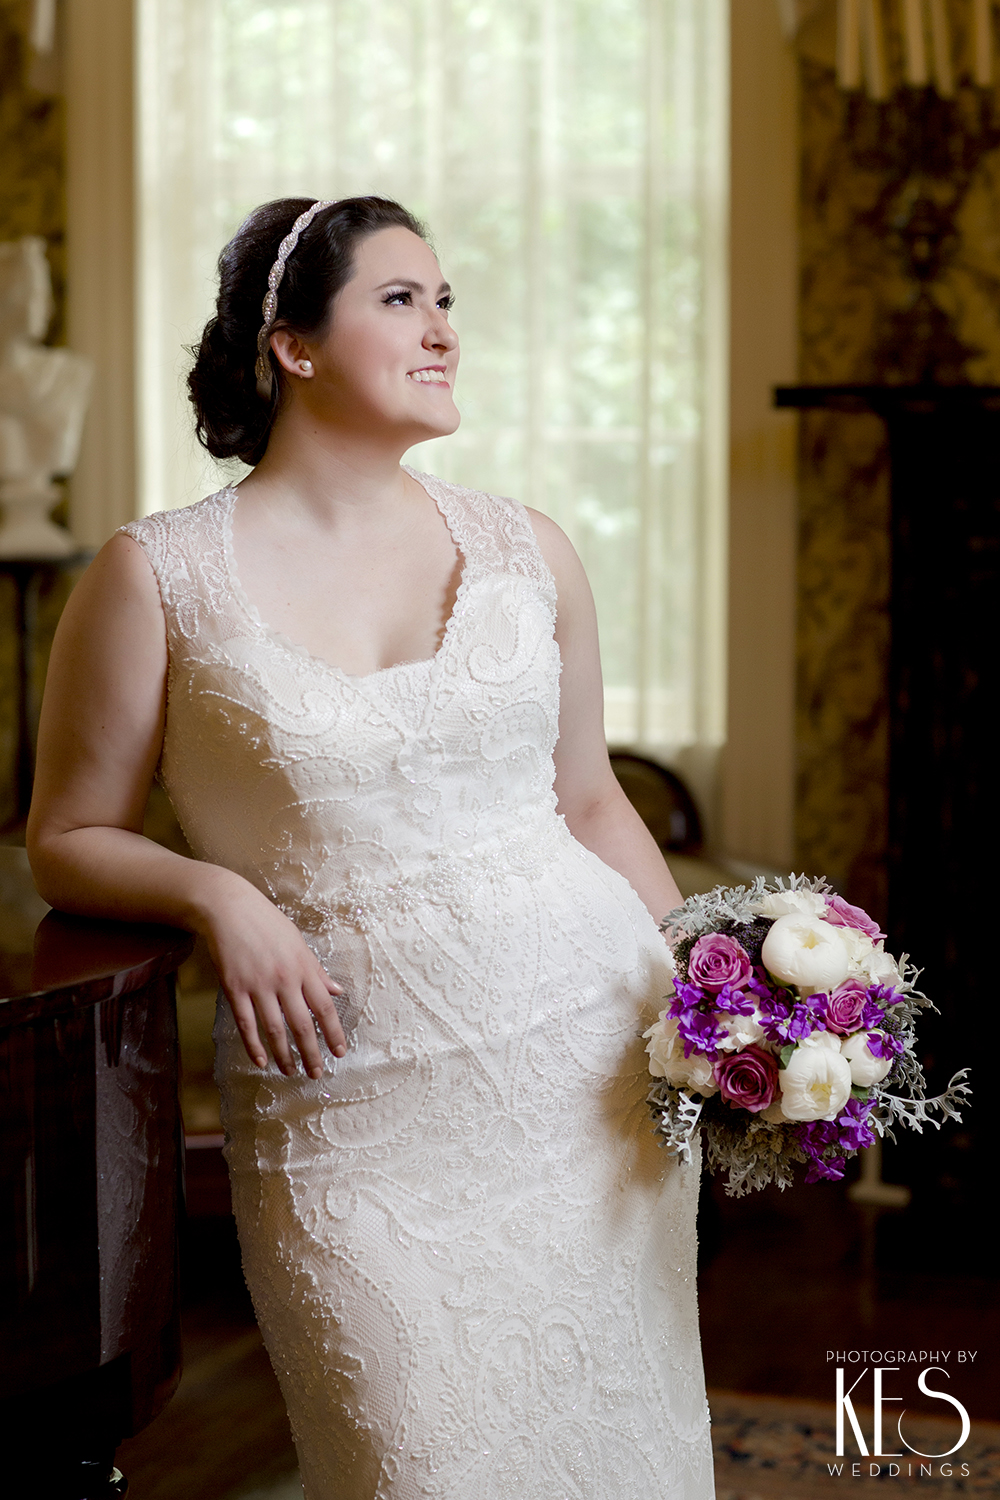 Trapnall_Hall_Bridals_KES_Weddings_3.JPG